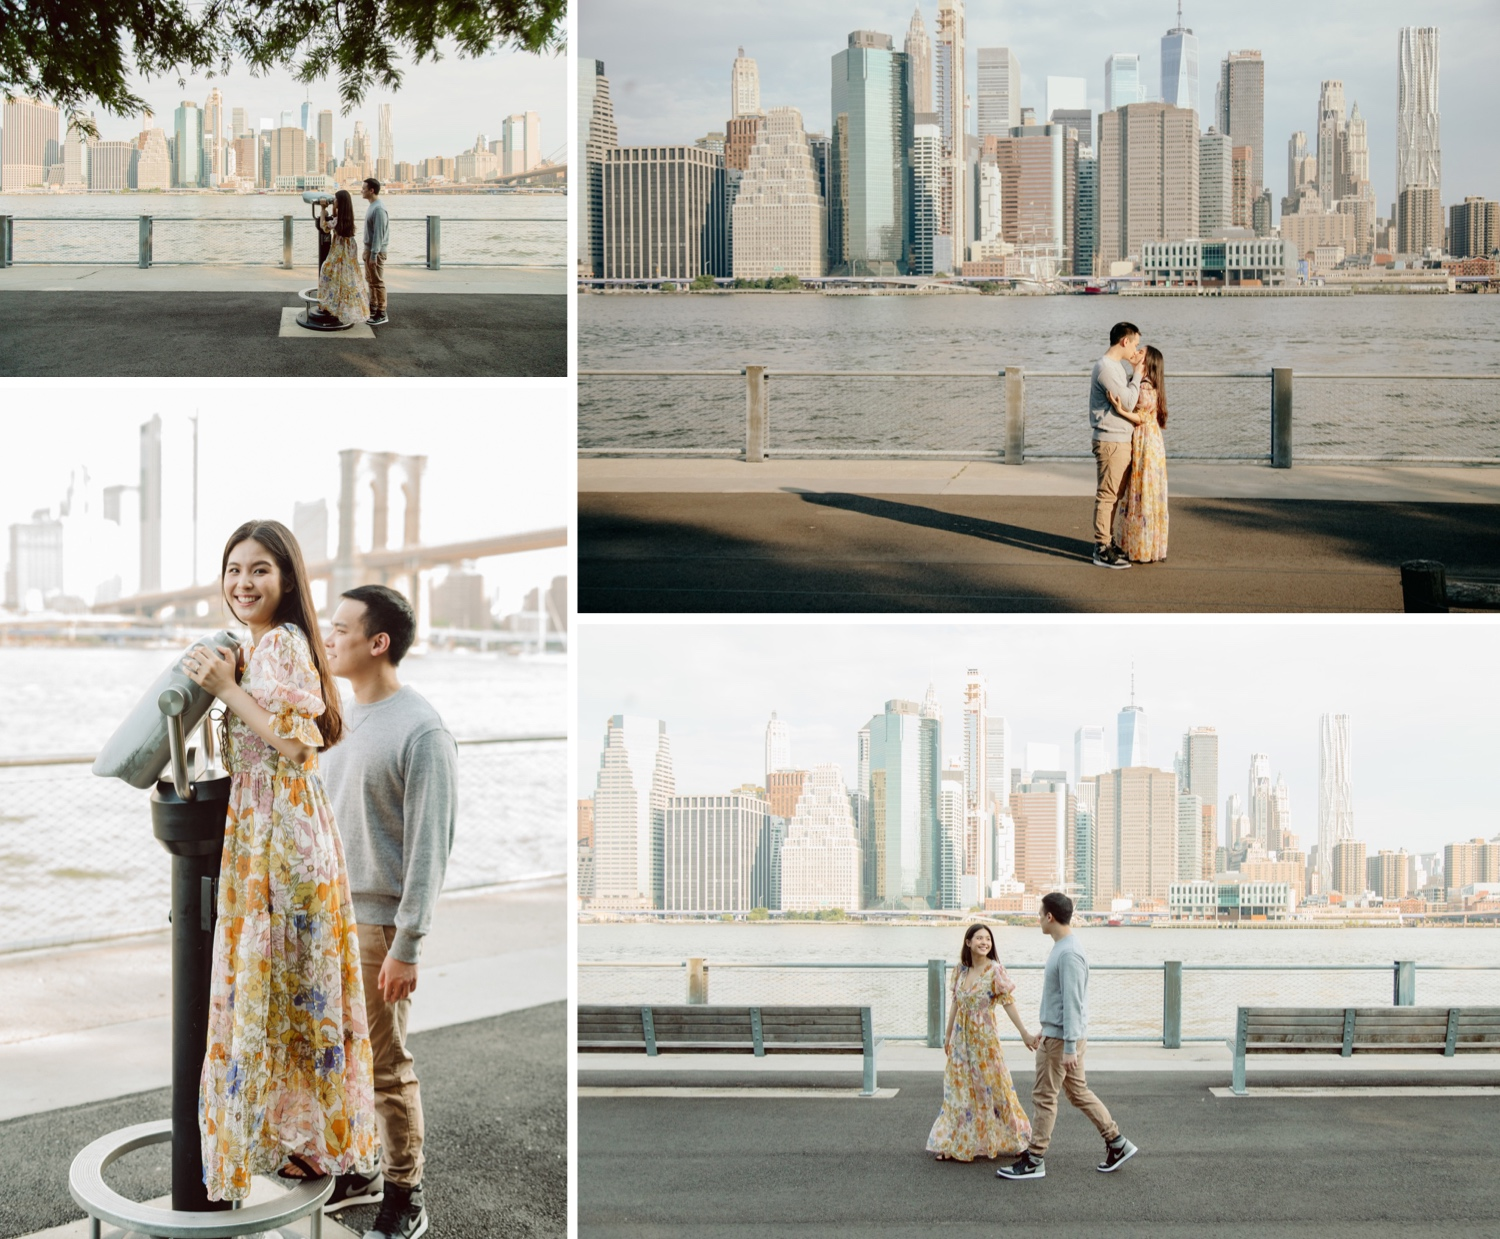 Brooklyn Bridge Park Engagement Session, Brooklyn Engagement Session, Brooklyn Pier 1 Engagement Session, 1HOTEL Engagement Session, Brooklyn Bridge Promenade Engagement Session, Brooklyn Engagement Photographers, NYC Engagement Sessions, Outdoor Engagement Spots in NYC, NYC Engagement Session Inspiration, Spring Engagement Session, Summer Engagement Session, NYC Summer Engagement Session